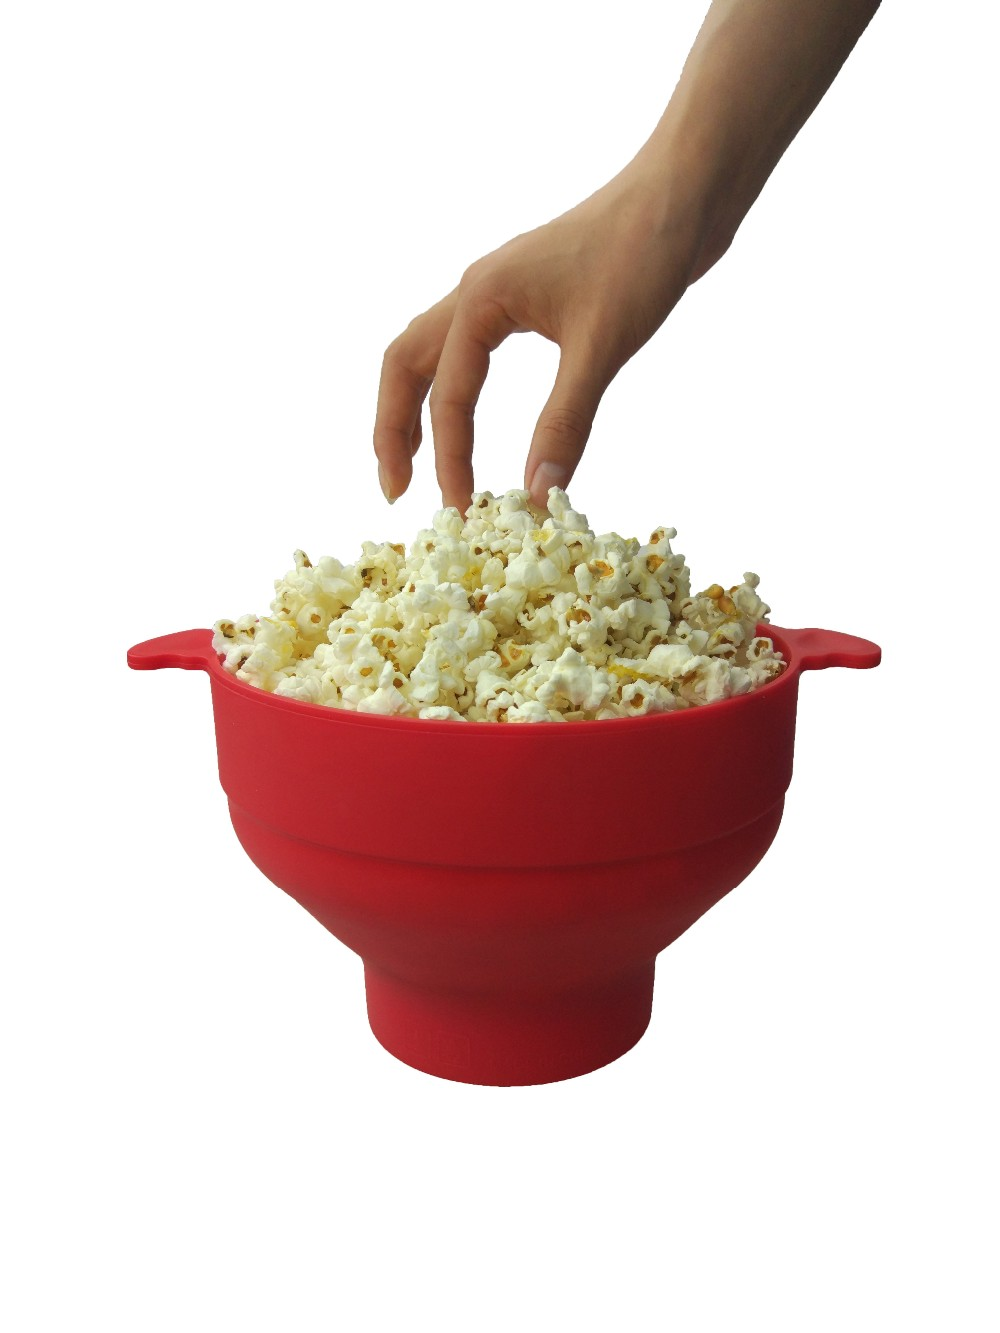 Custom Logo Printed Microwave Silicone Popcorn Popper, Collapsible Popcorn Maker